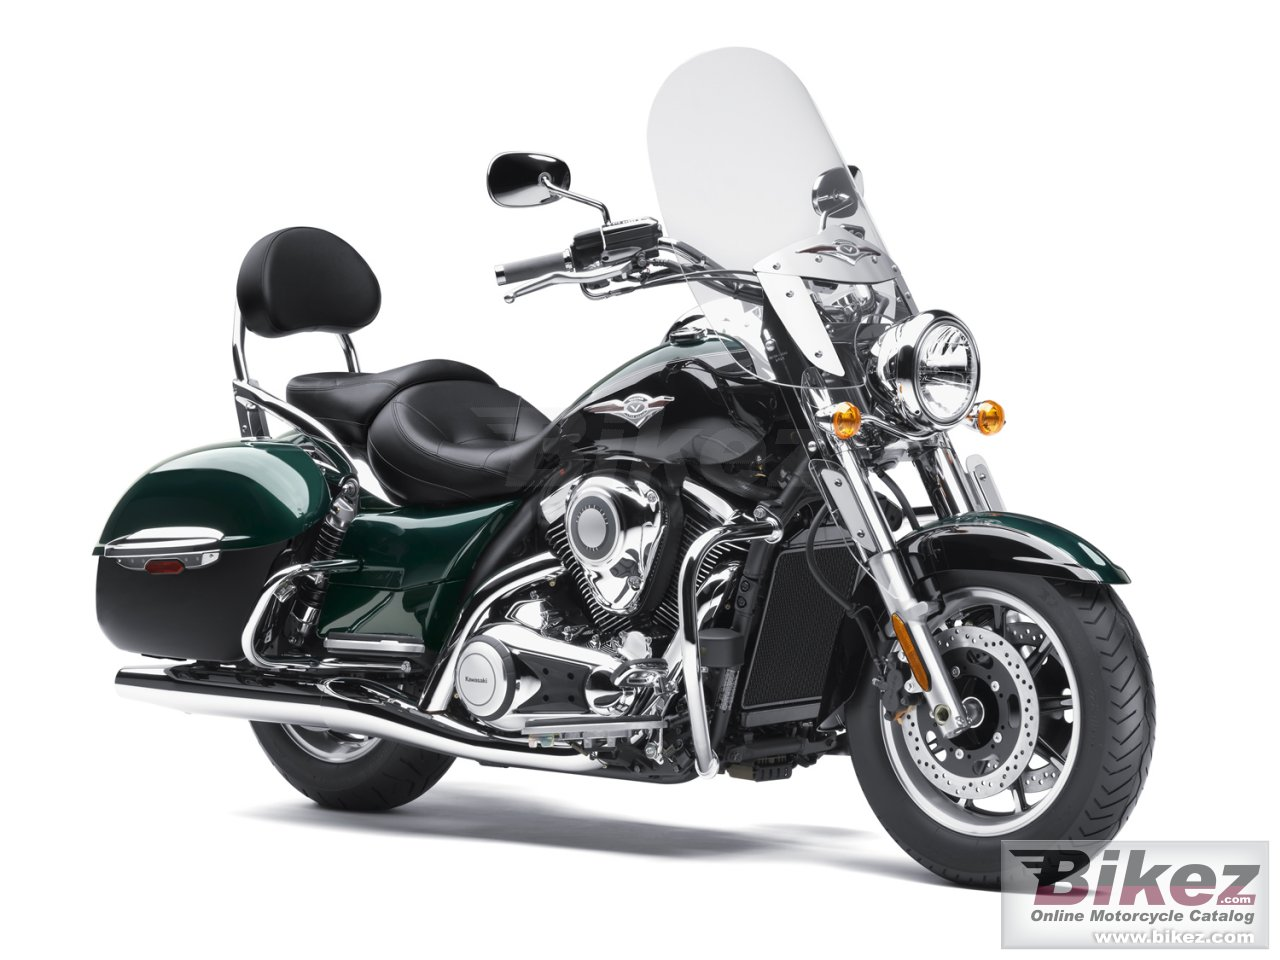 Big Kawasaki vulcan 1700 nomad picture and wallpaper from Bikez.com